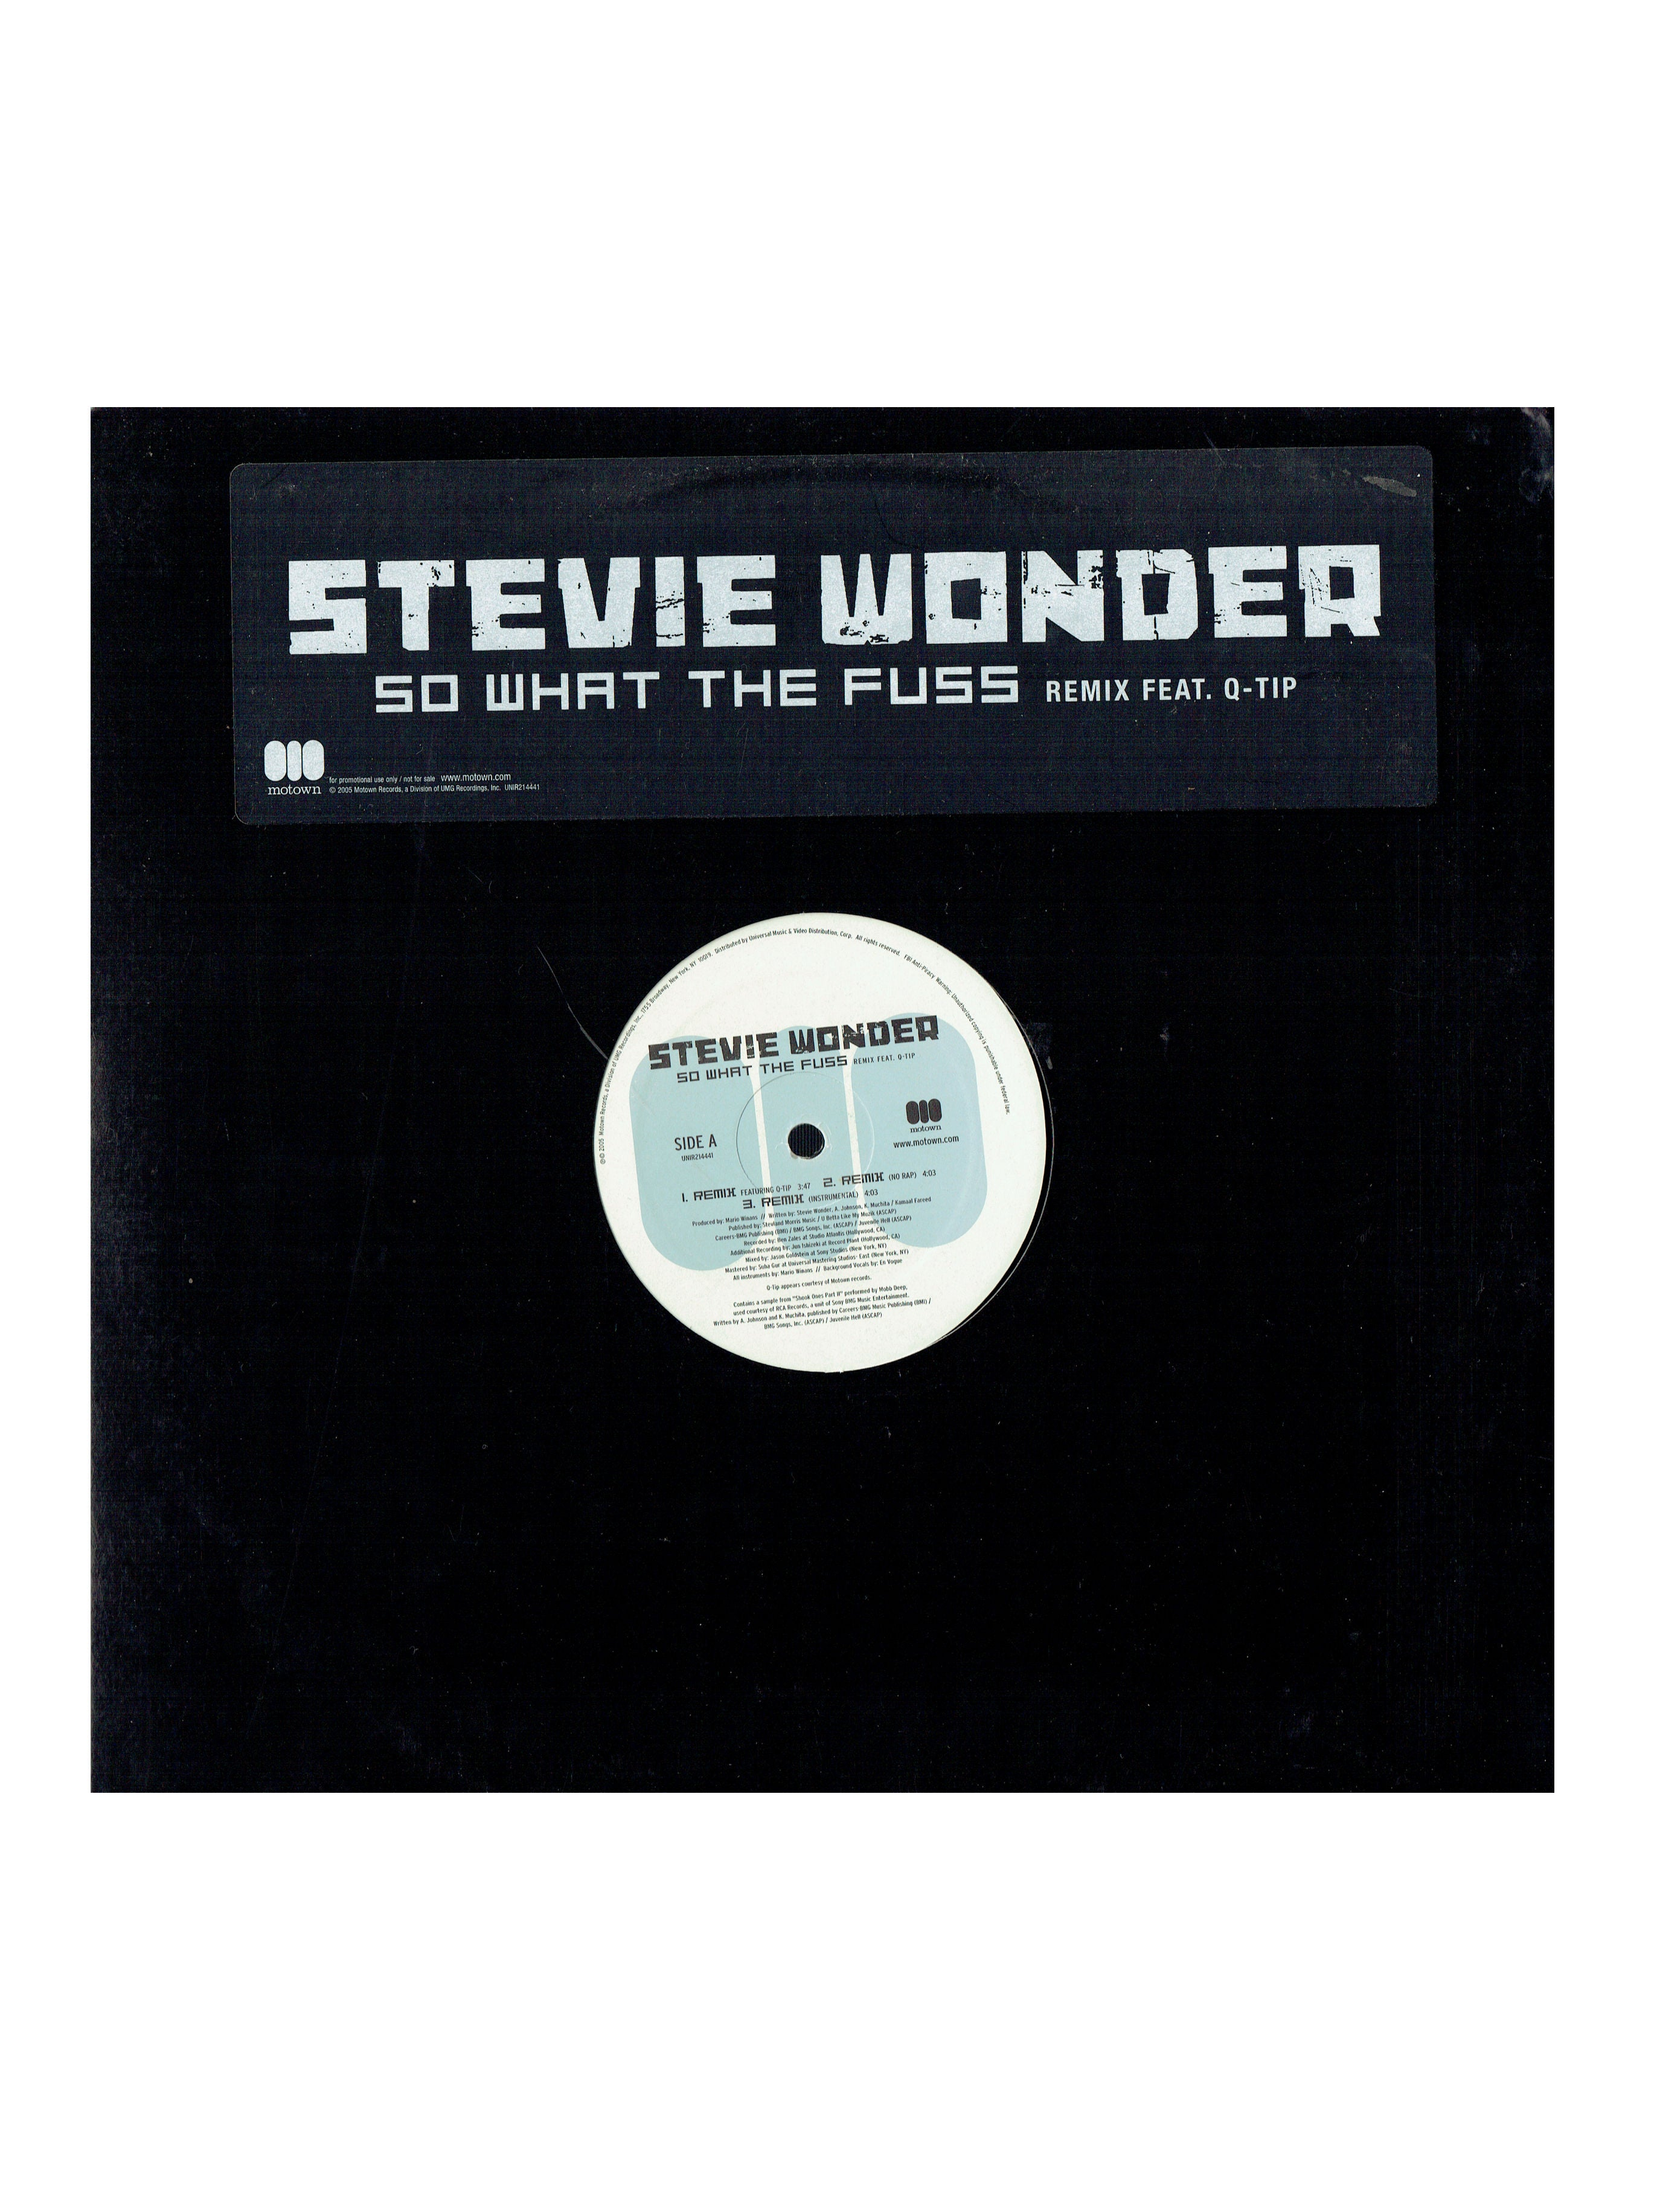 Stevie Wonder So What The Fuss 12 Inch Vinyl Single Remixes Prince 2005 Q-Tip